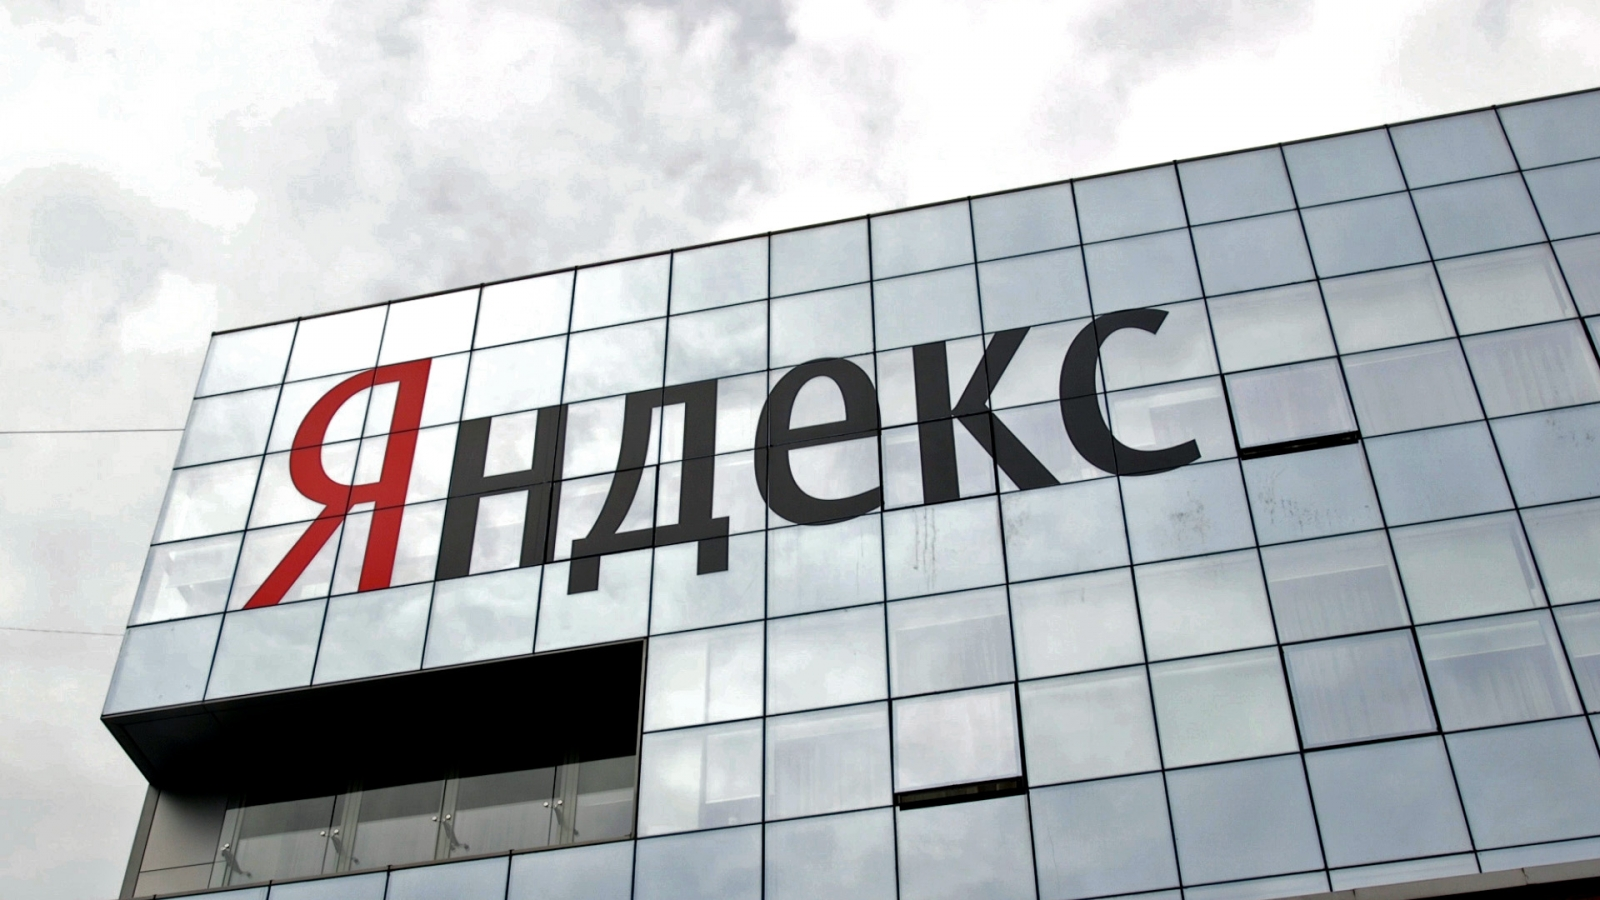 Yandex: Inside the Russian company that claims to be